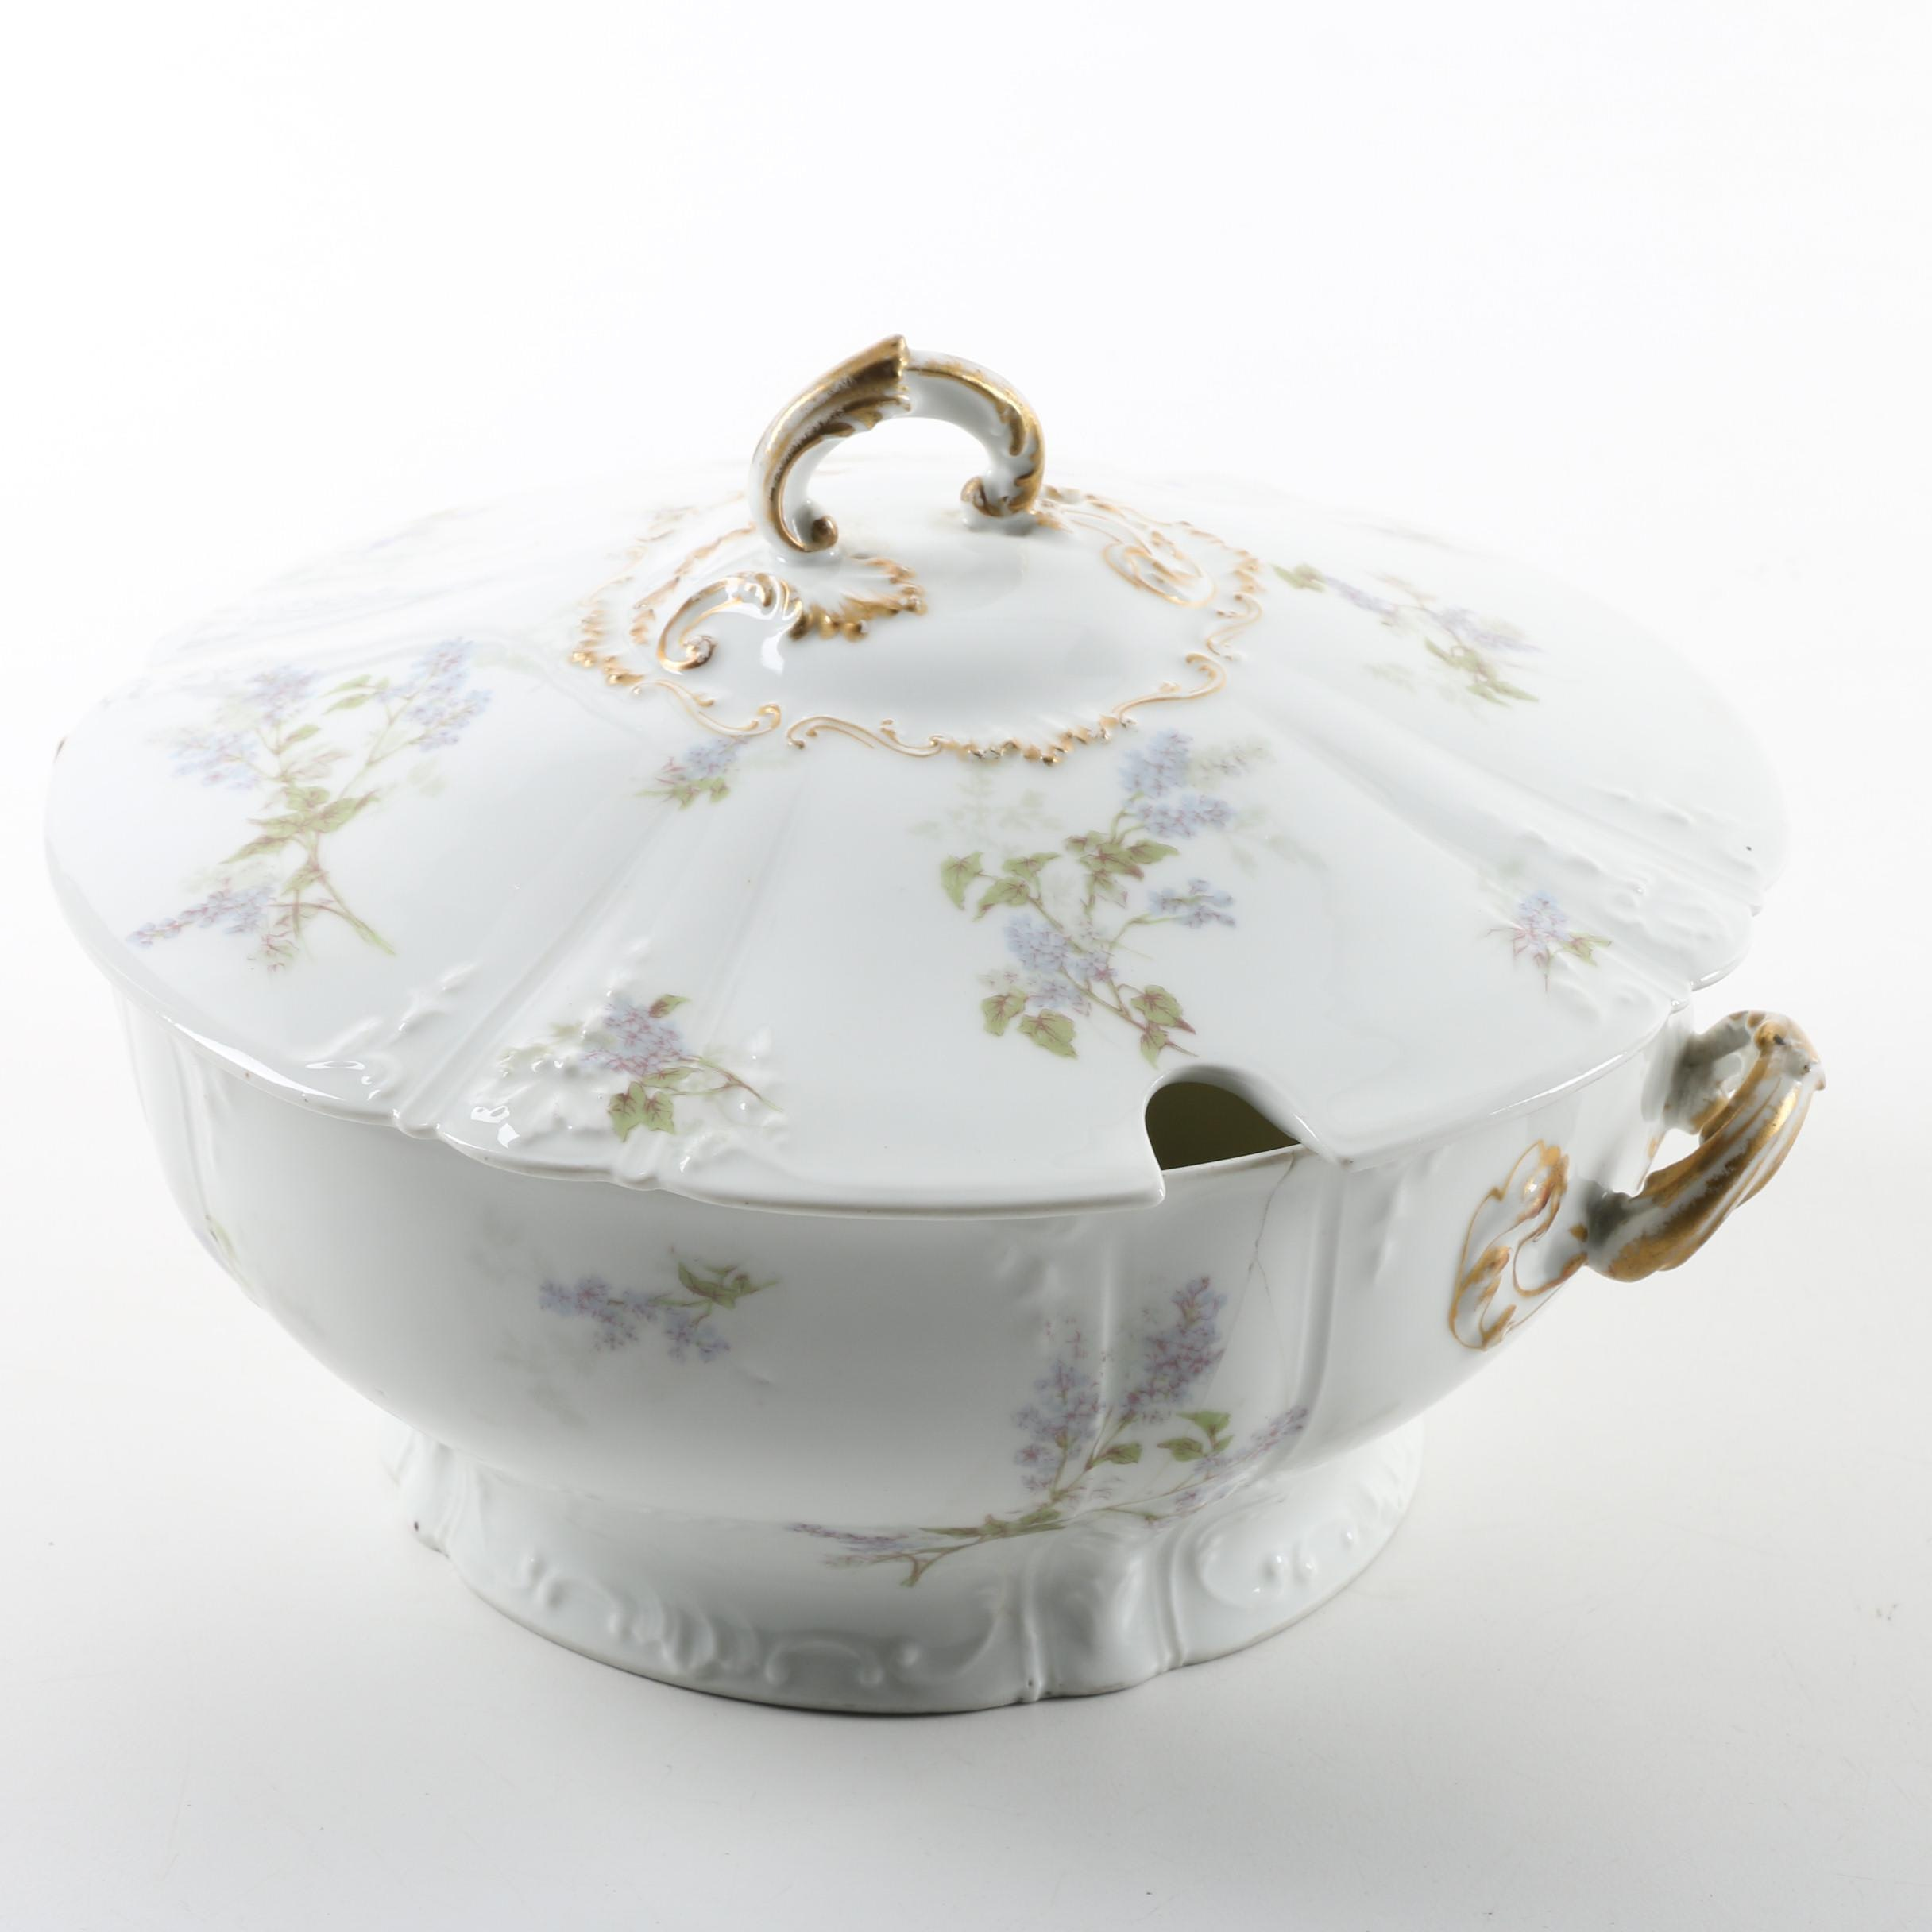 Vintage CF Haviland Limoges Porcelain Soup Tureen